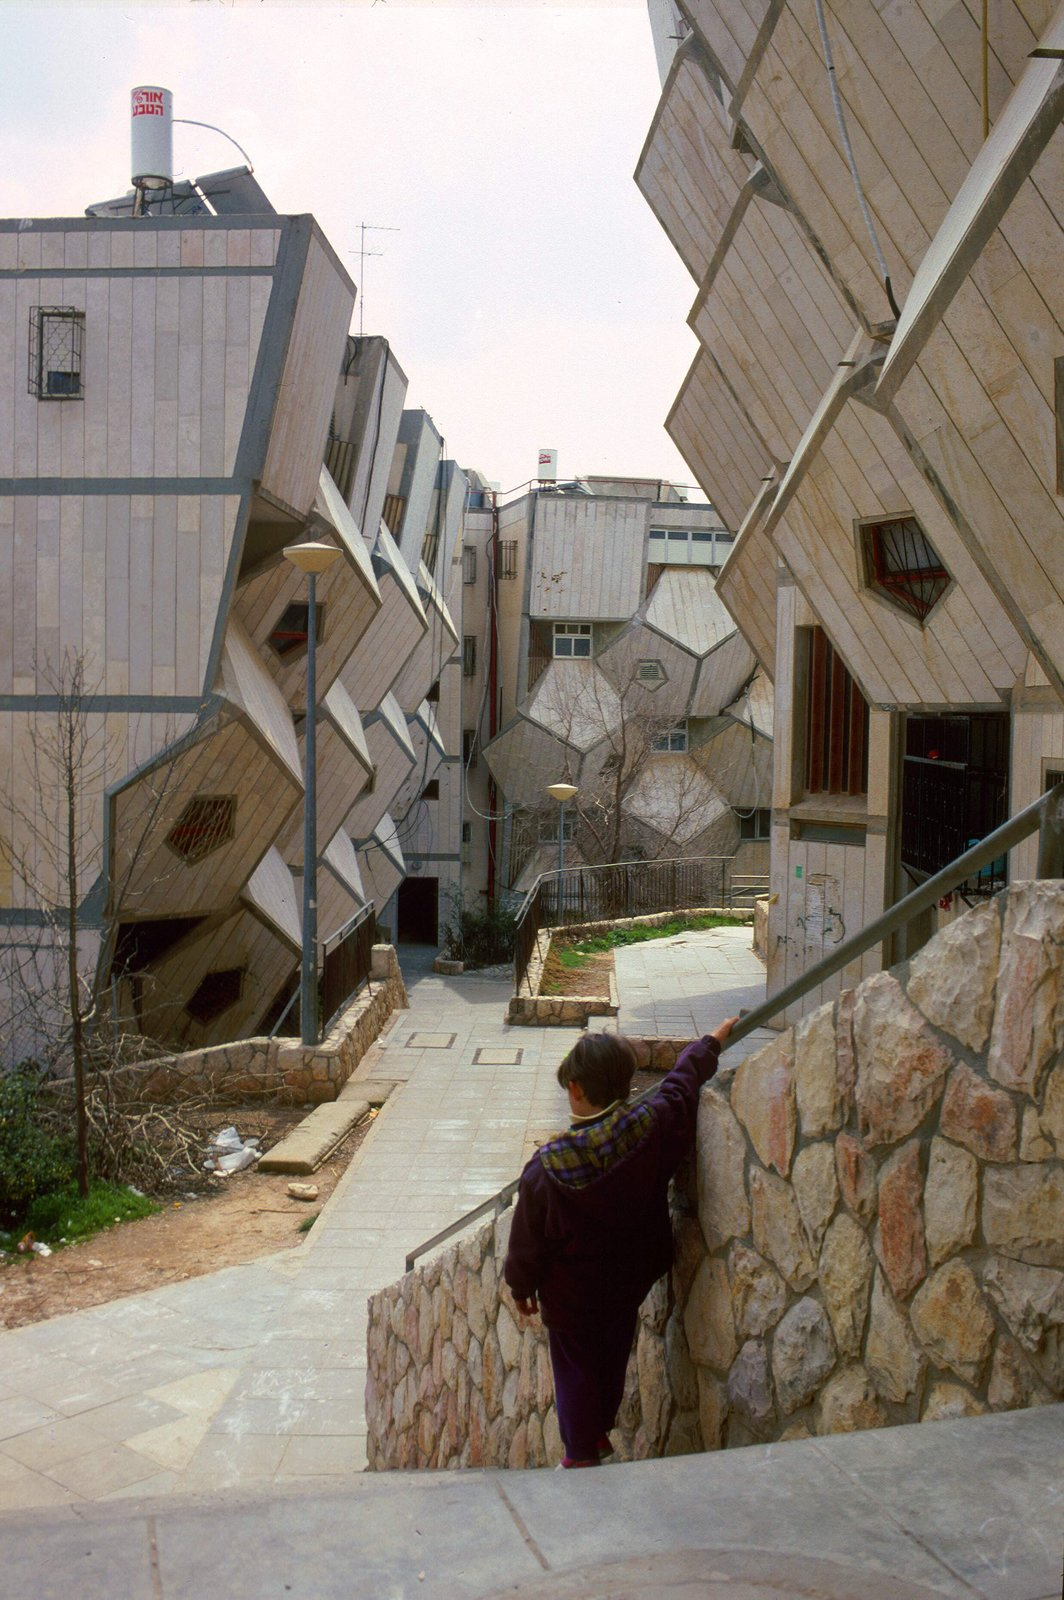 Hecker argues that the use of dodecahedrons and the pentagon-shaped walls helps to enclose a relatively large volume with less surface area than a rectangular prisim. Photo by Zvi Hecker.  Geometric Housing Complex in Jerusalem  by Diana Budds